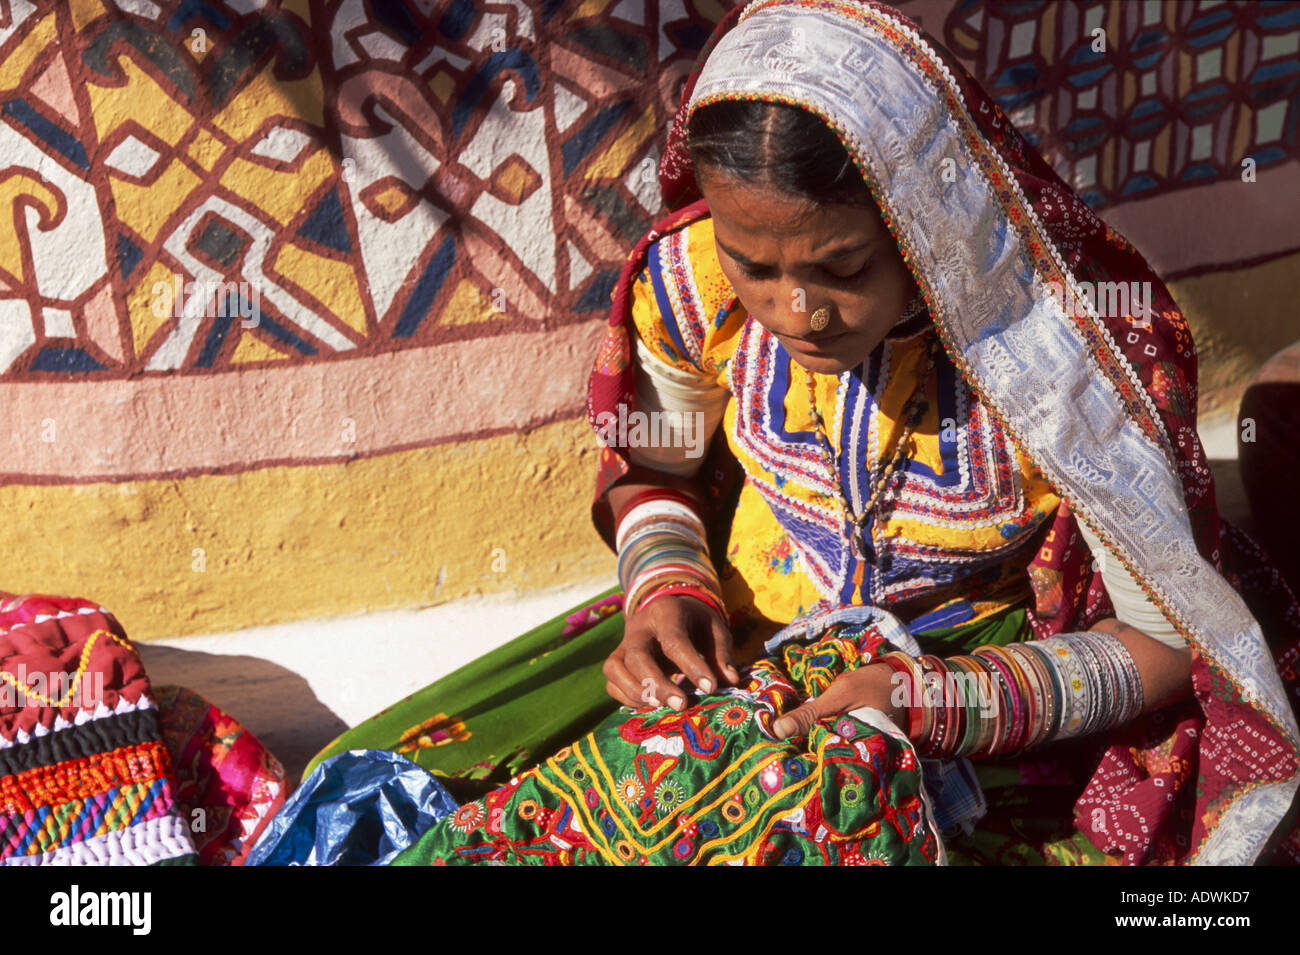 Tribal woman doing embroidery outside her home in the village of Ludia near Bhuj Kutch region of Gujarat India - Stock Image